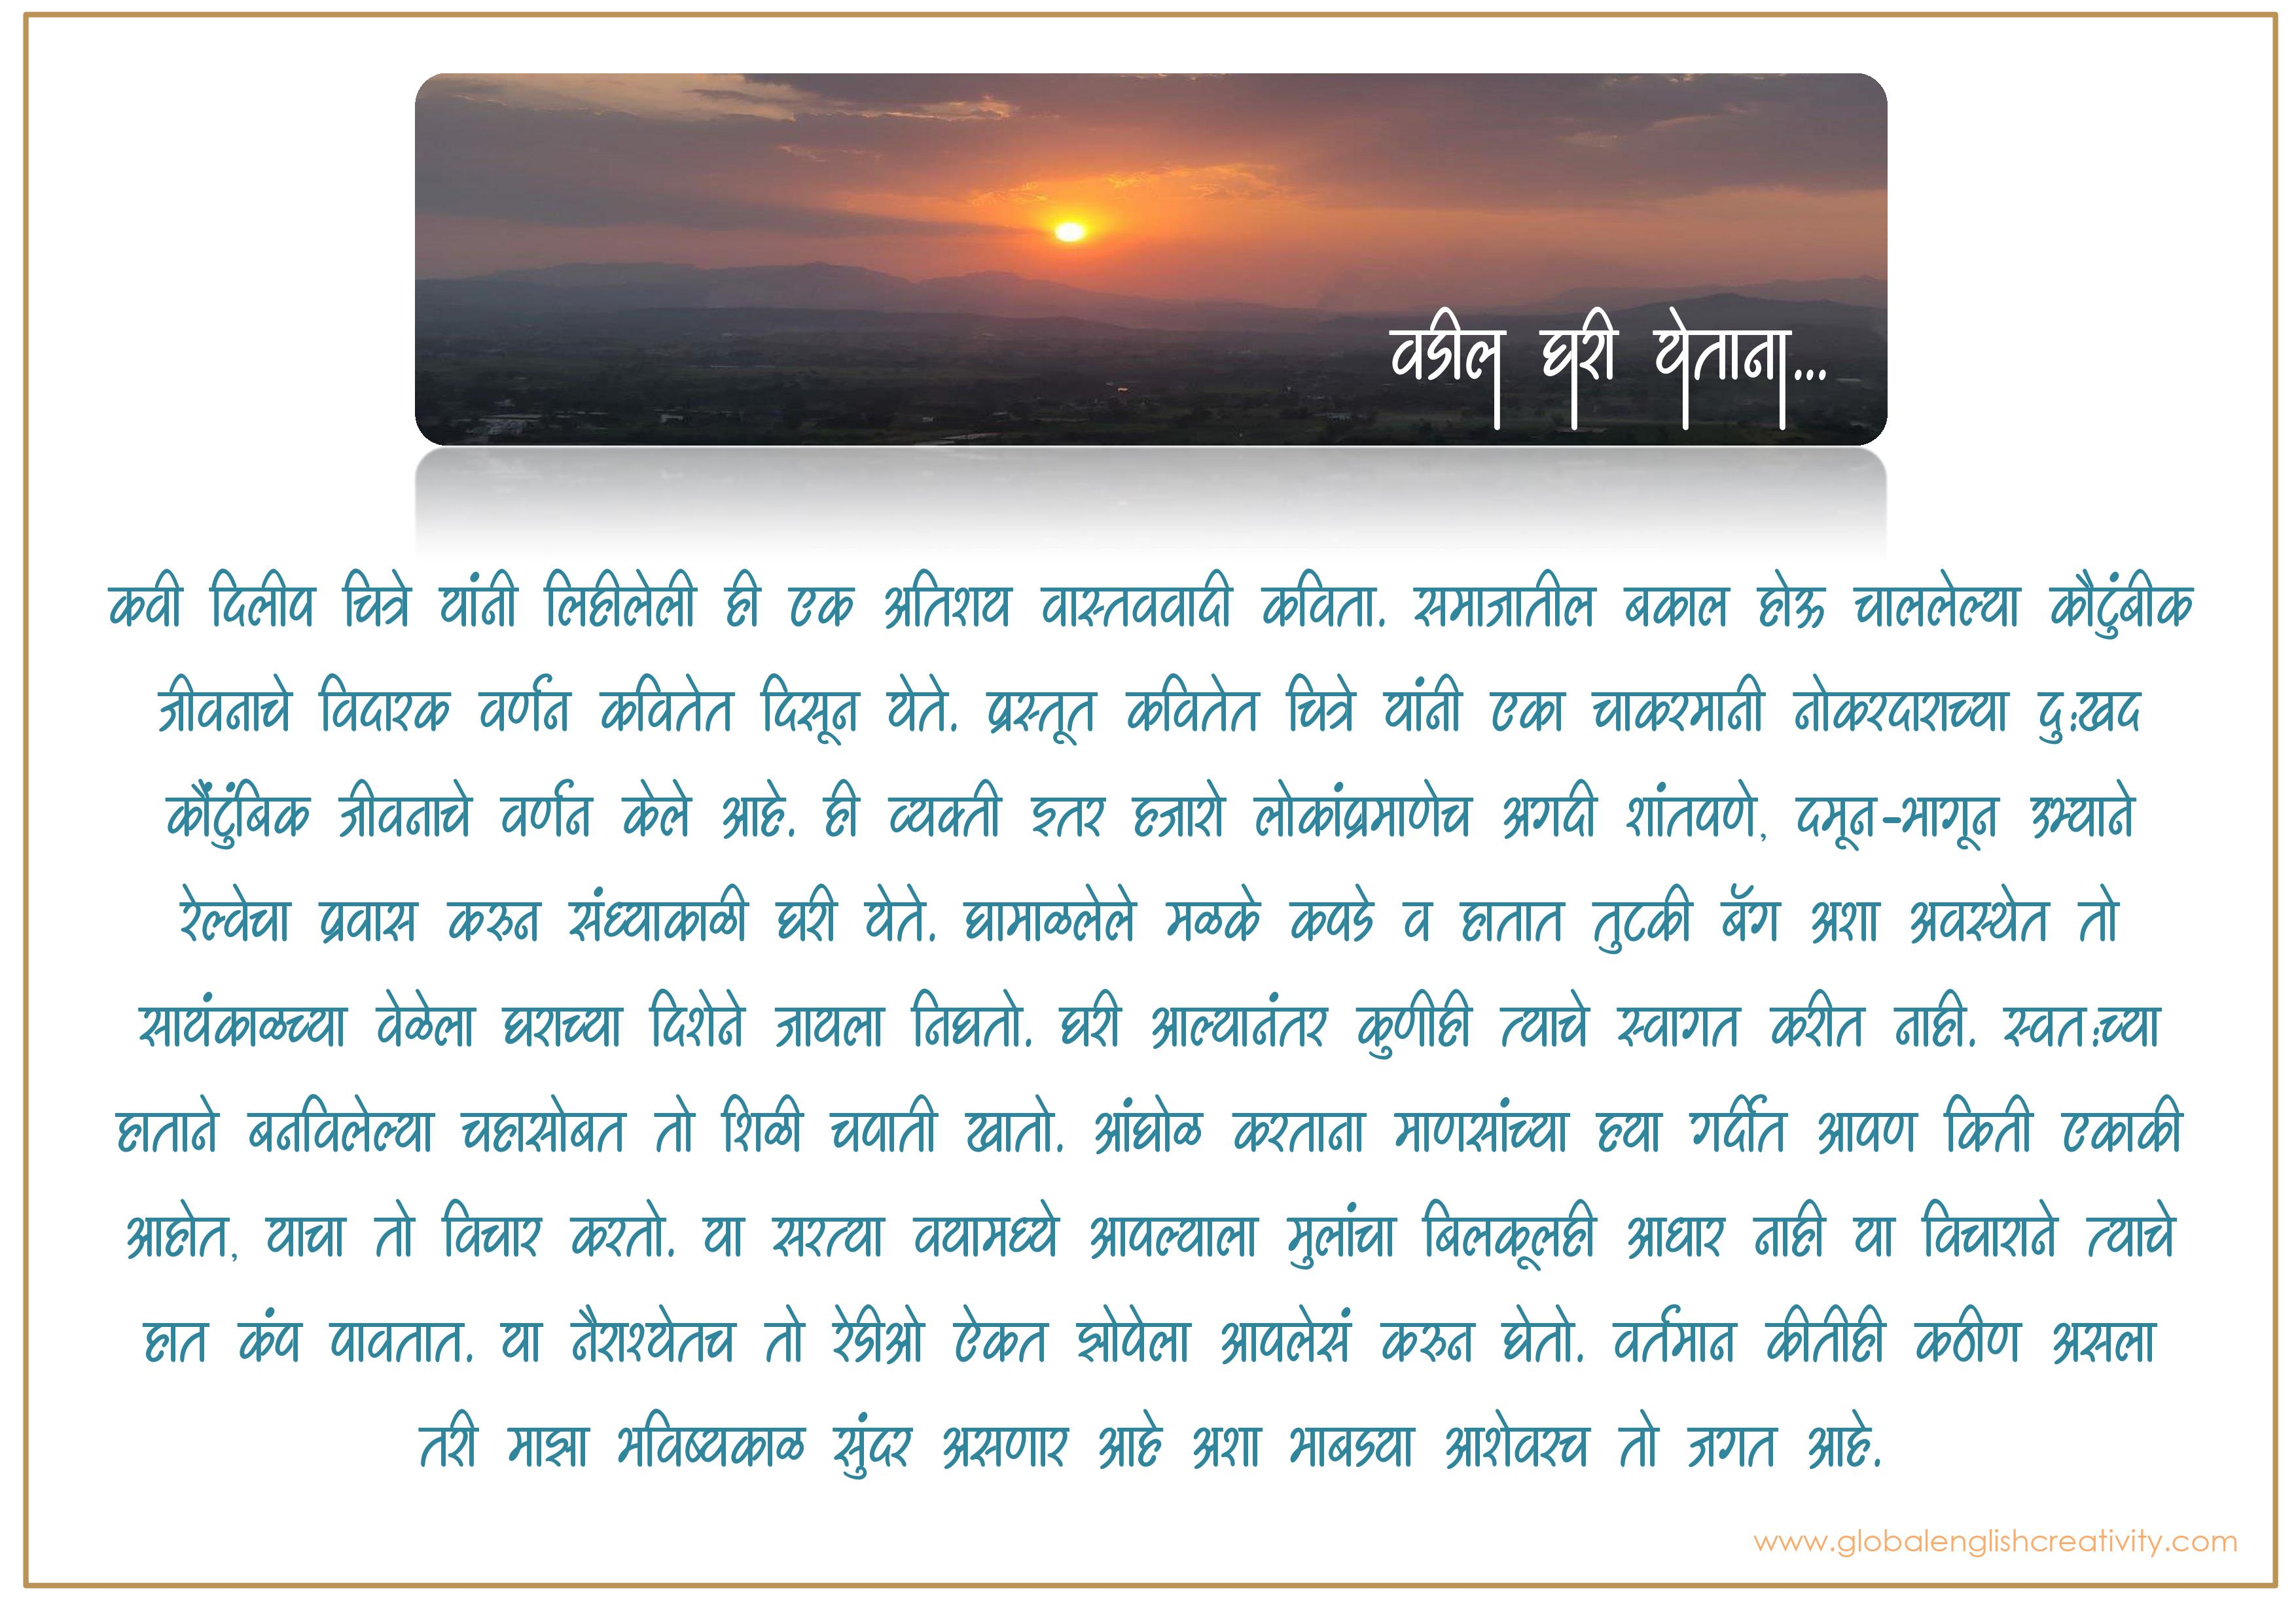 Poem_father_returning_home_Dilip_Chitre_4